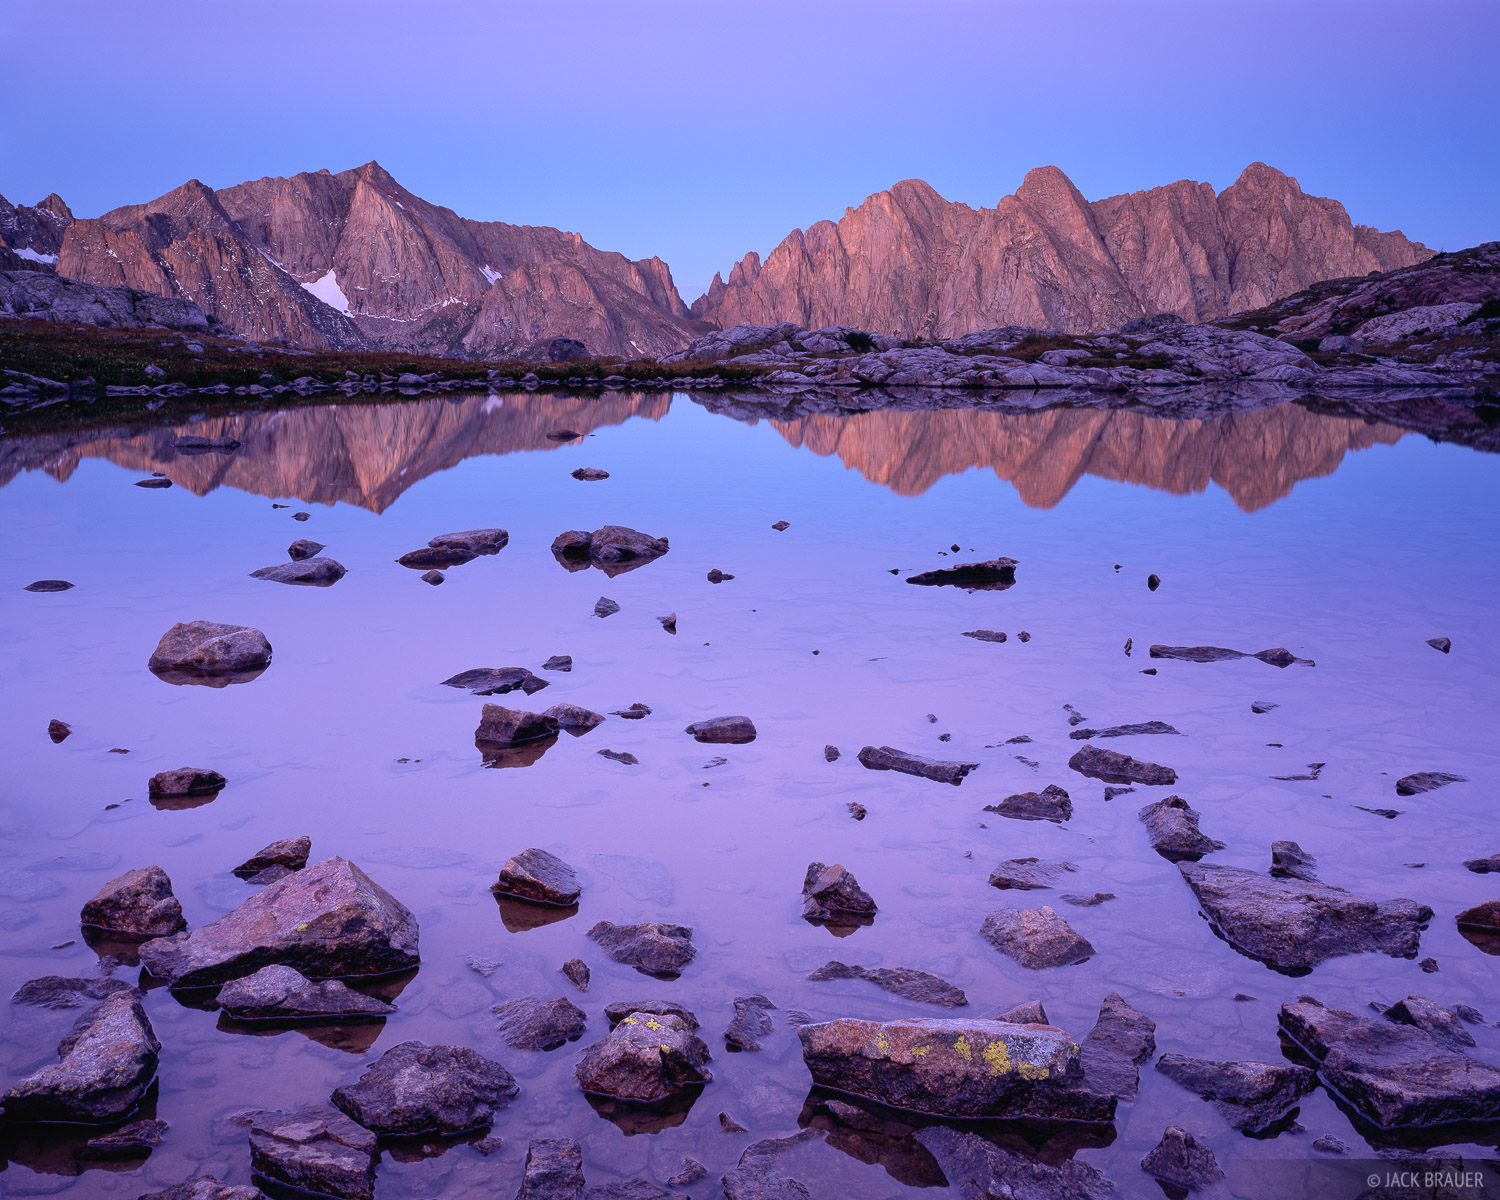 Dawn reflection of Mount Eolus in a high lake in the Needle Mountains, San Juan Mountains - September